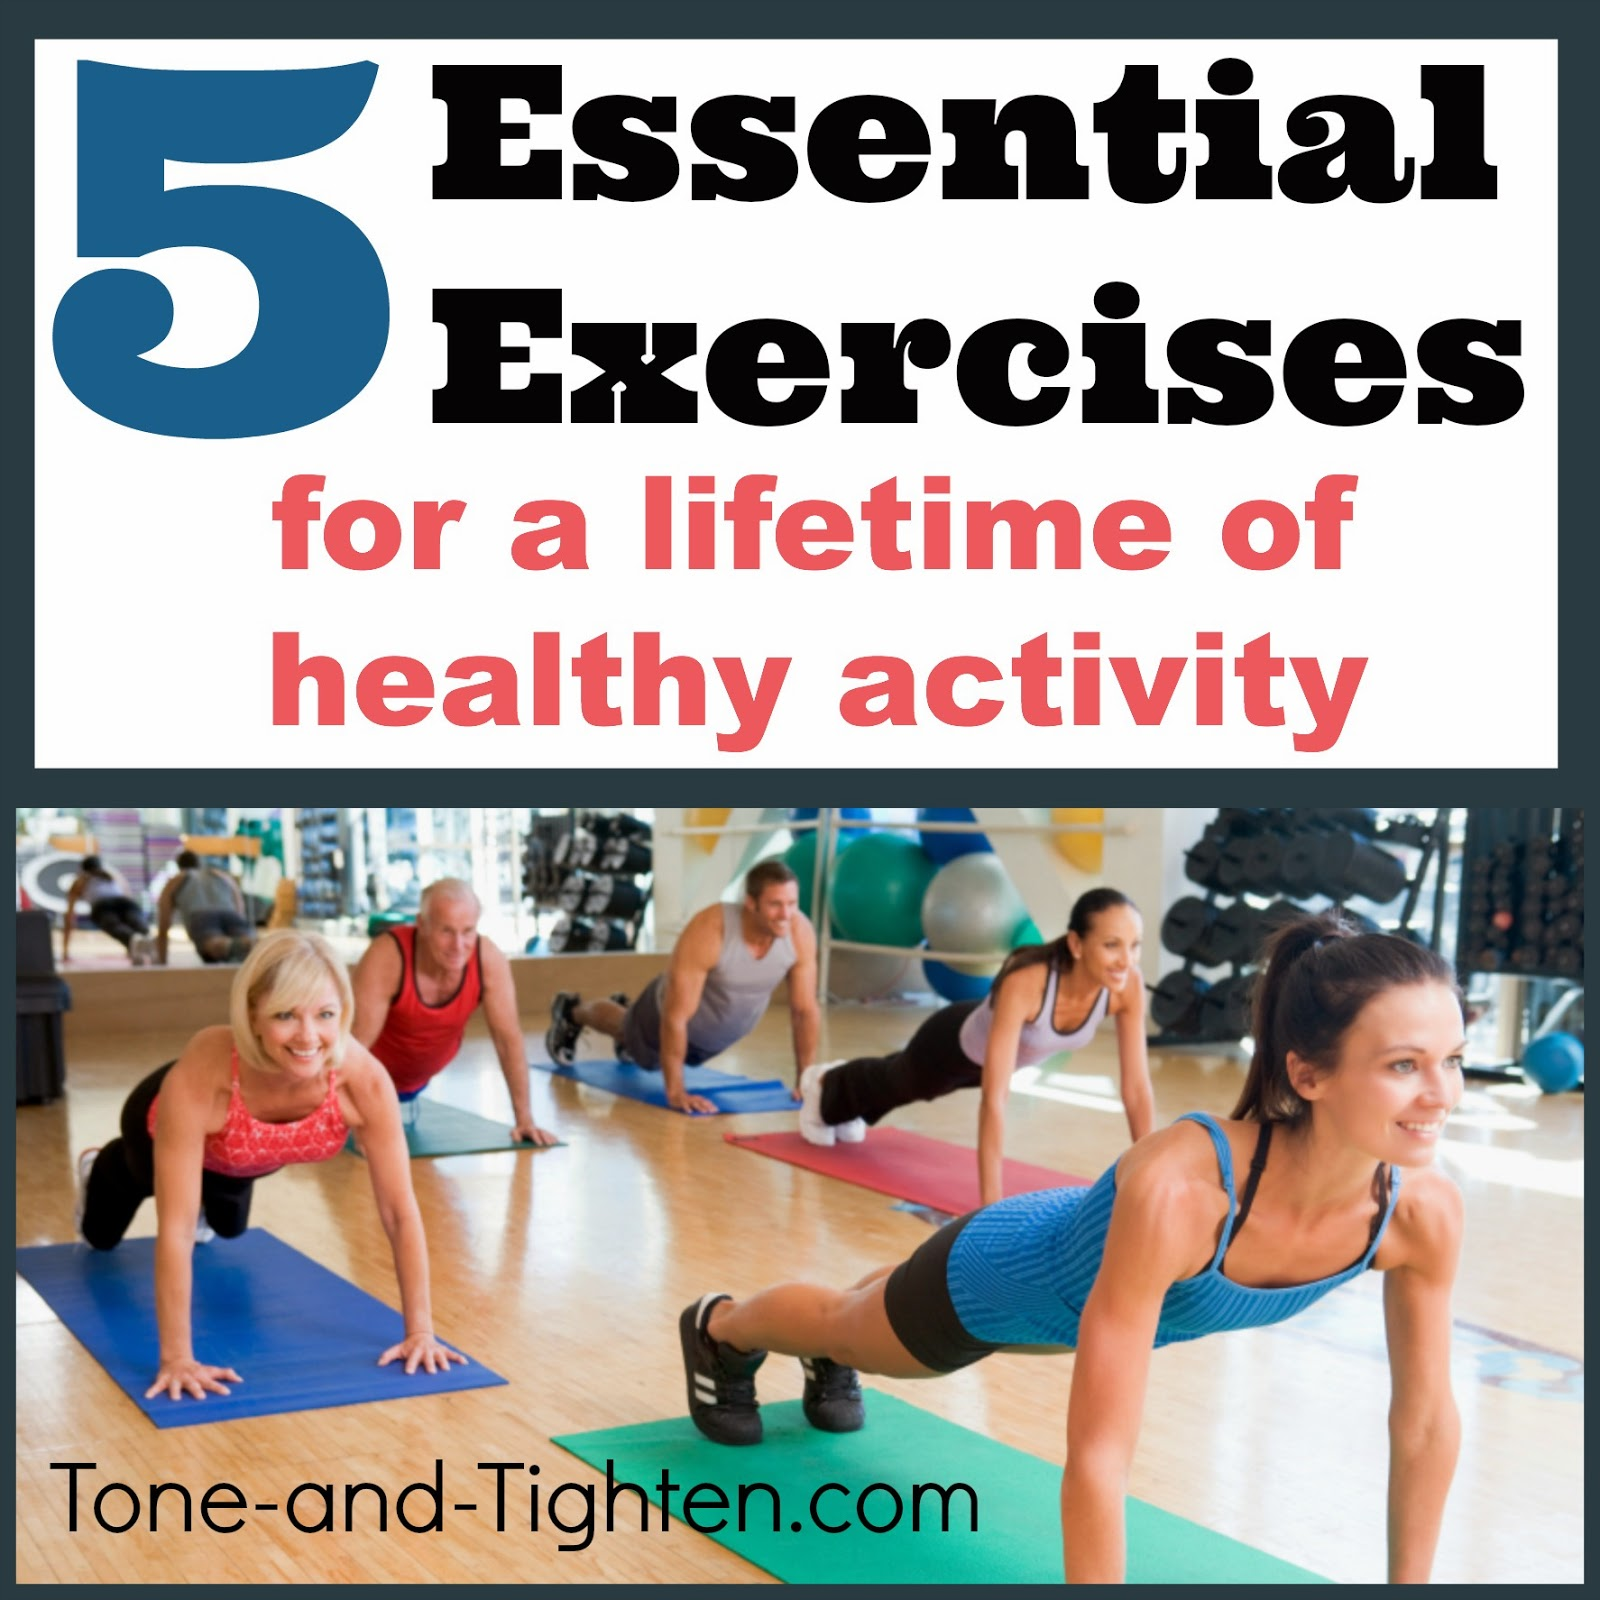 https://tone-and-tighten.com/2014/02/5-essential-exercises-for-a-lifetime-of-healthy-activity.html